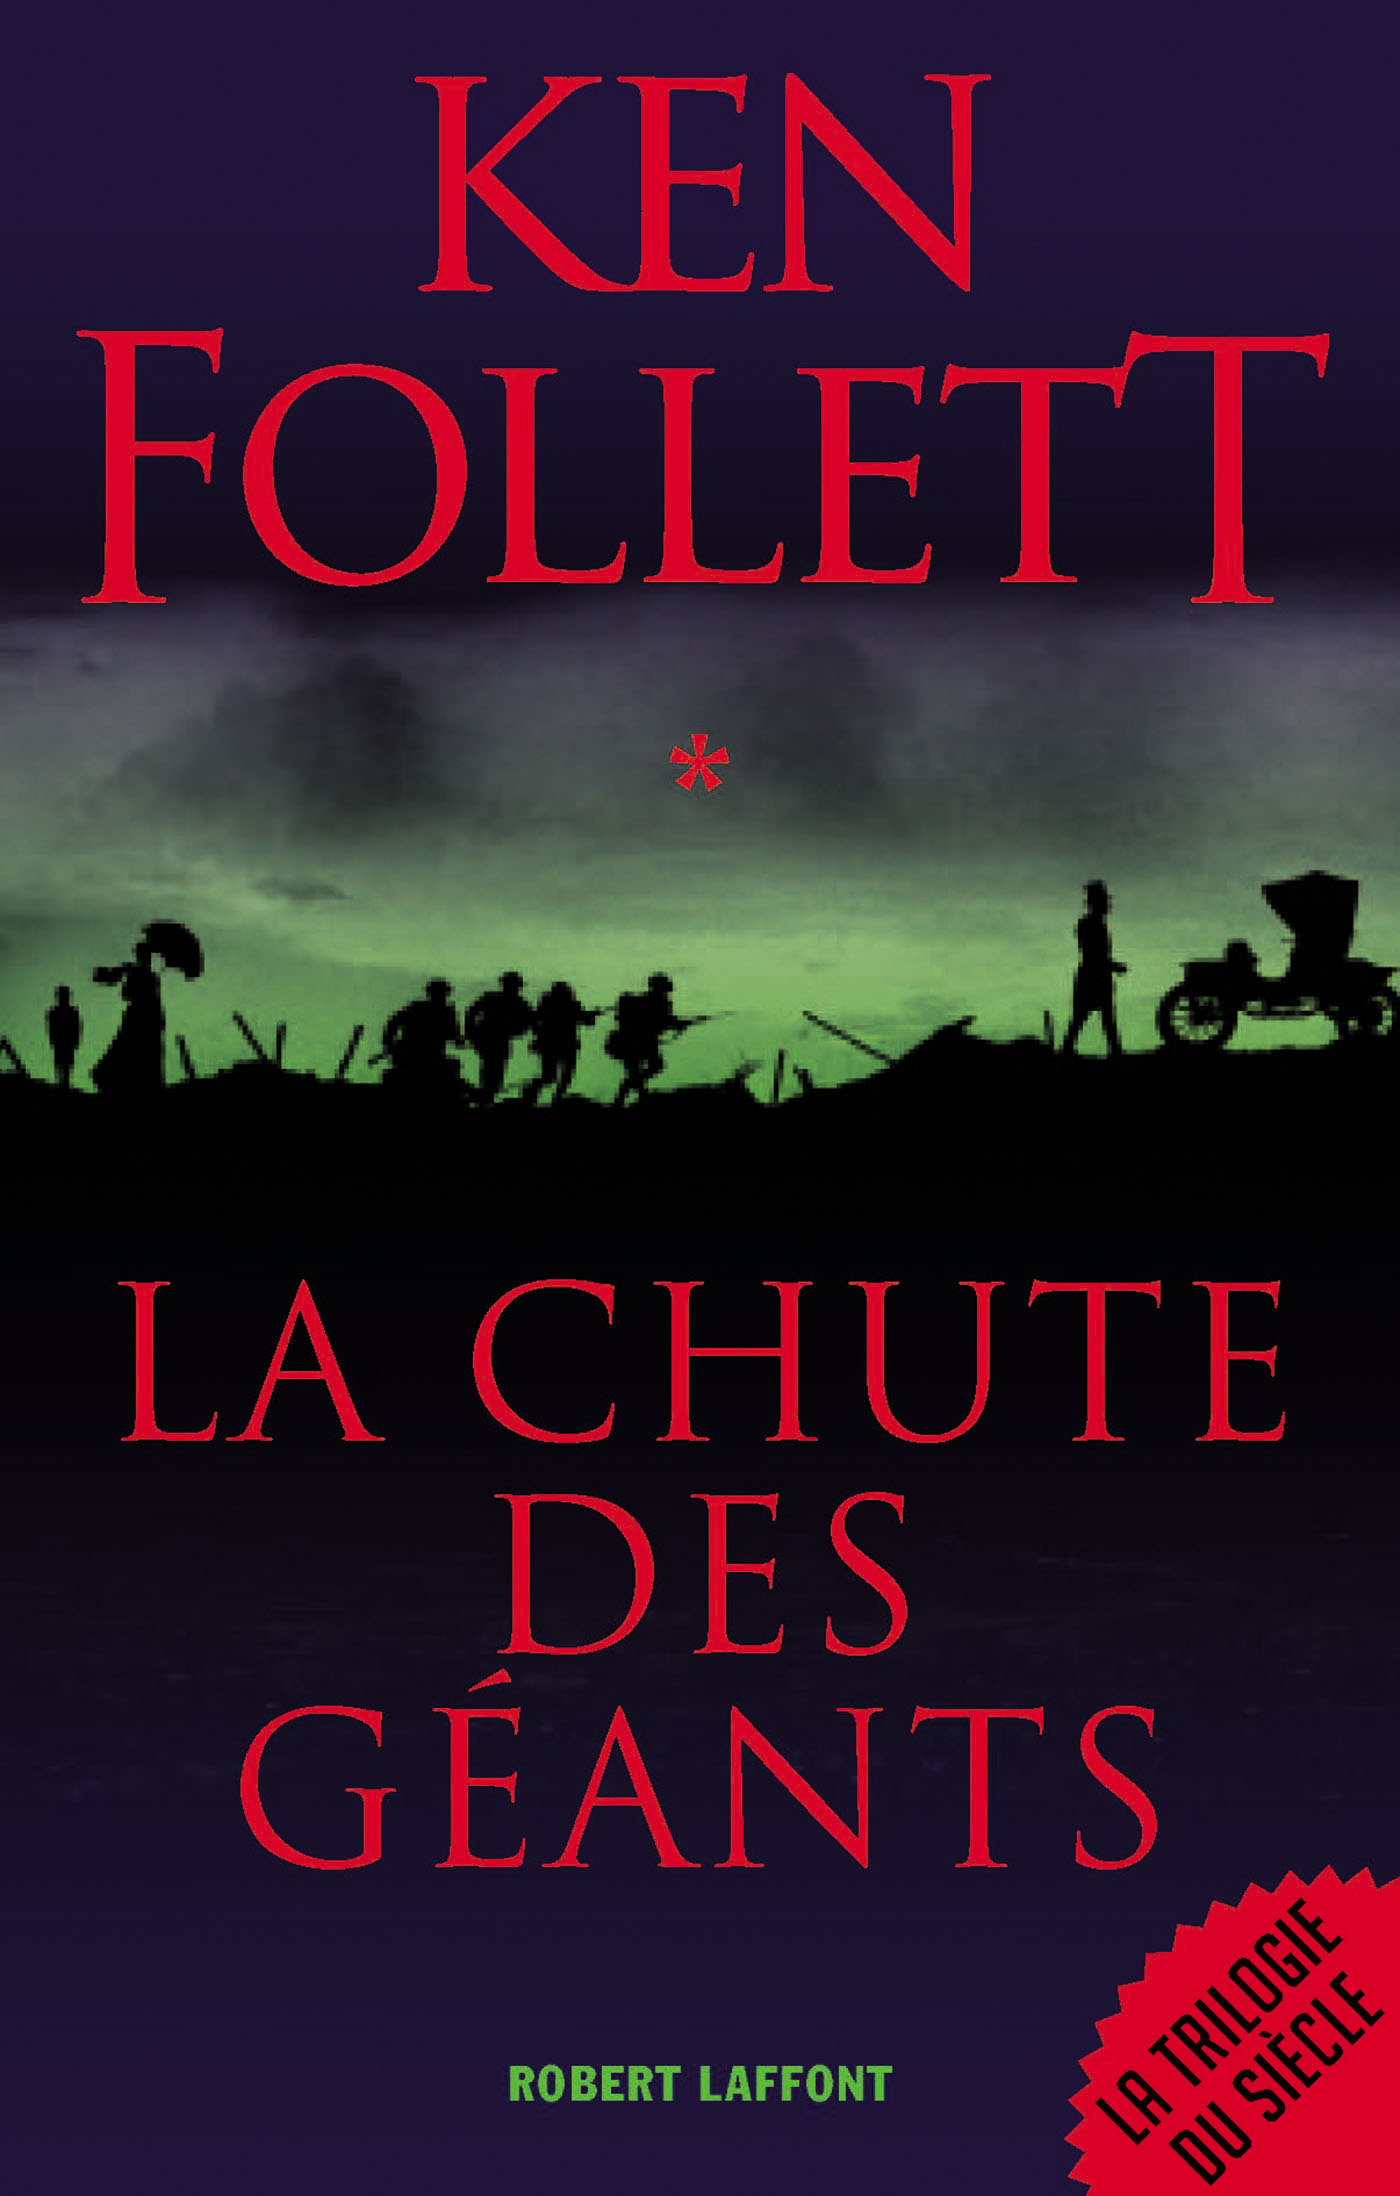 La Chute des géants | FOLLETT, Ken